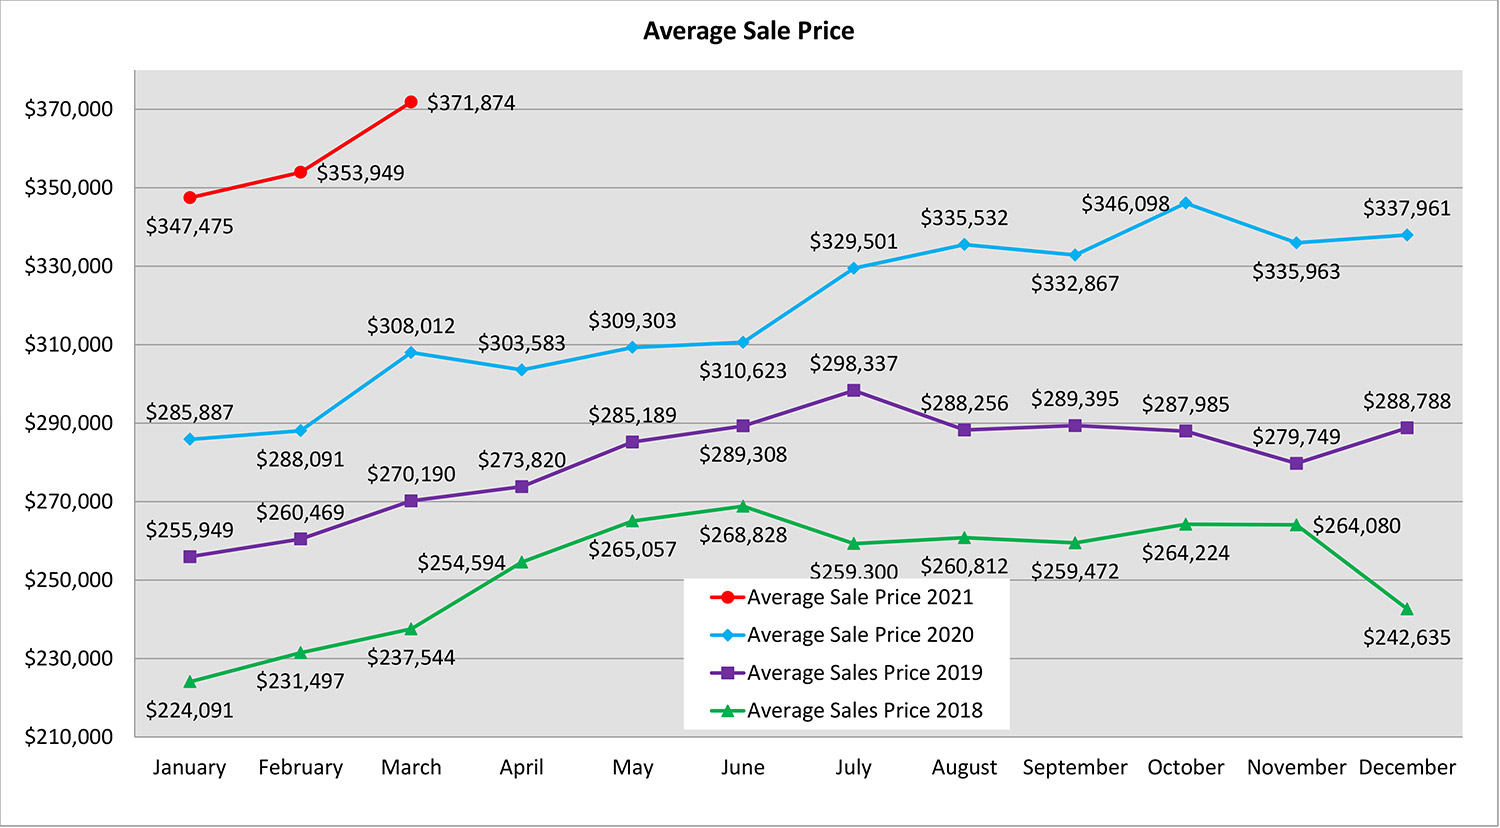 Spokane real estate market average sale price